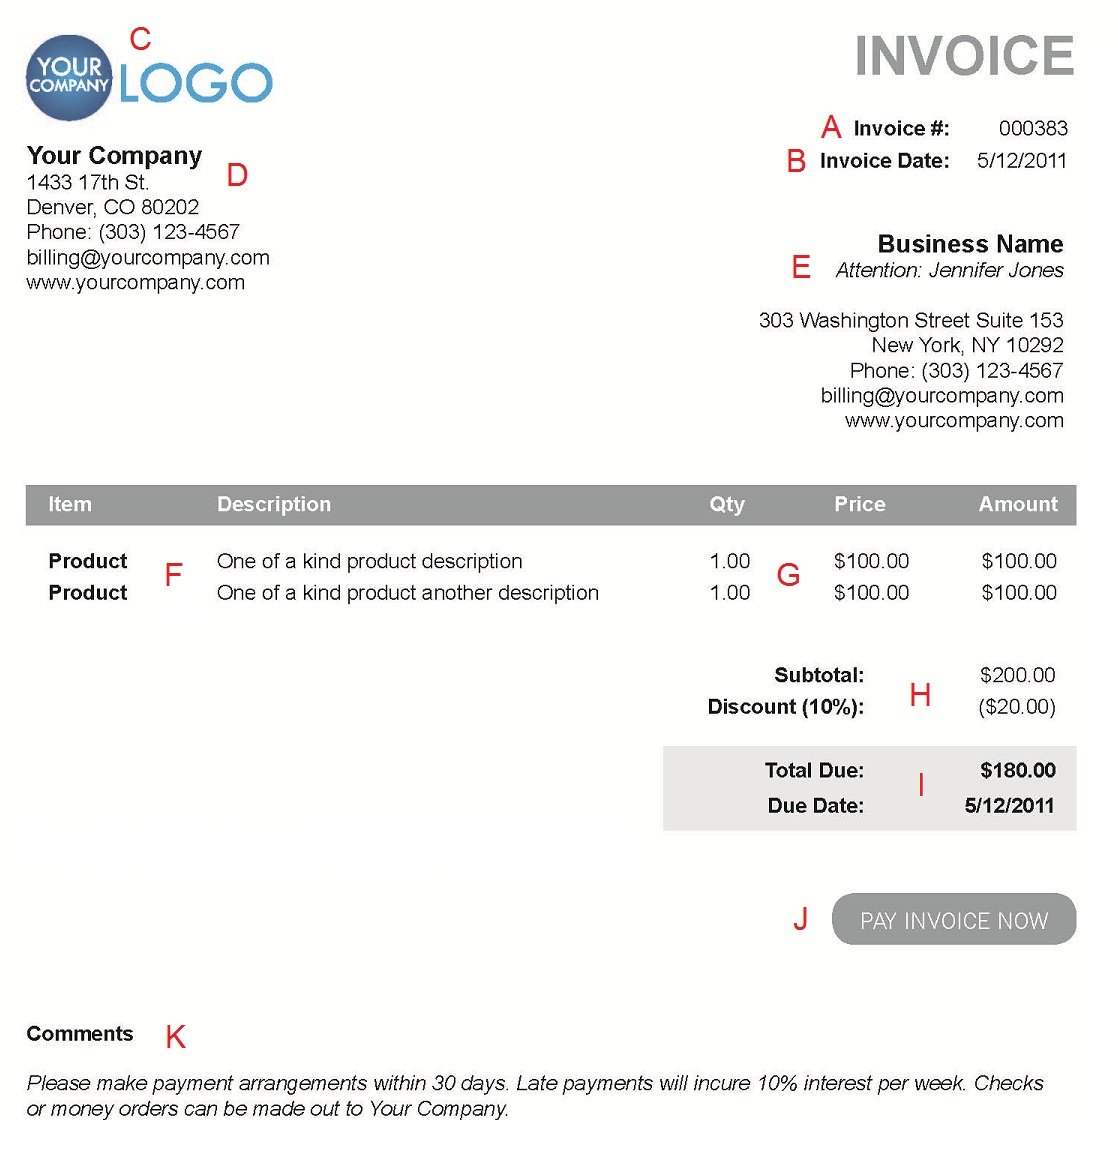 Angkajituus  Pleasant The  Different Sections Of An Electronic Payment Invoice With Hot A  With Awesome Acura Tlx Invoice Price Also Subcontractor Invoice In Addition Create A Paypal Invoice And Past Due Invoice Template As Well As Invoice Pricing On New Cars Additionally Blank Service Invoice From Paysimplecom With Angkajituus  Hot The  Different Sections Of An Electronic Payment Invoice With Awesome A  And Pleasant Acura Tlx Invoice Price Also Subcontractor Invoice In Addition Create A Paypal Invoice From Paysimplecom